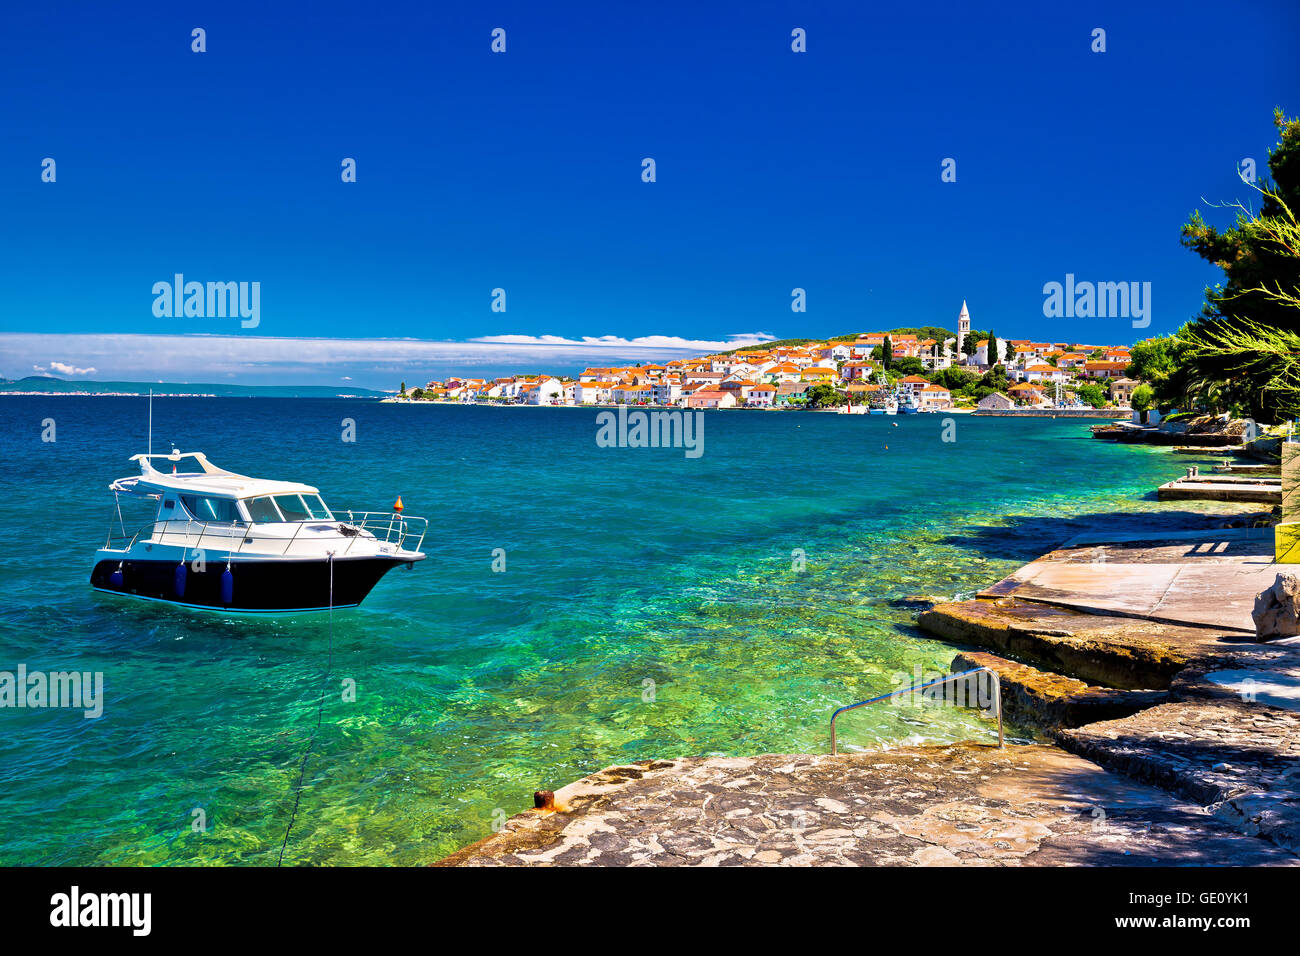 Kali beach and boat on turquoise sea, Island of Ugljan, Croatia - Stock Image